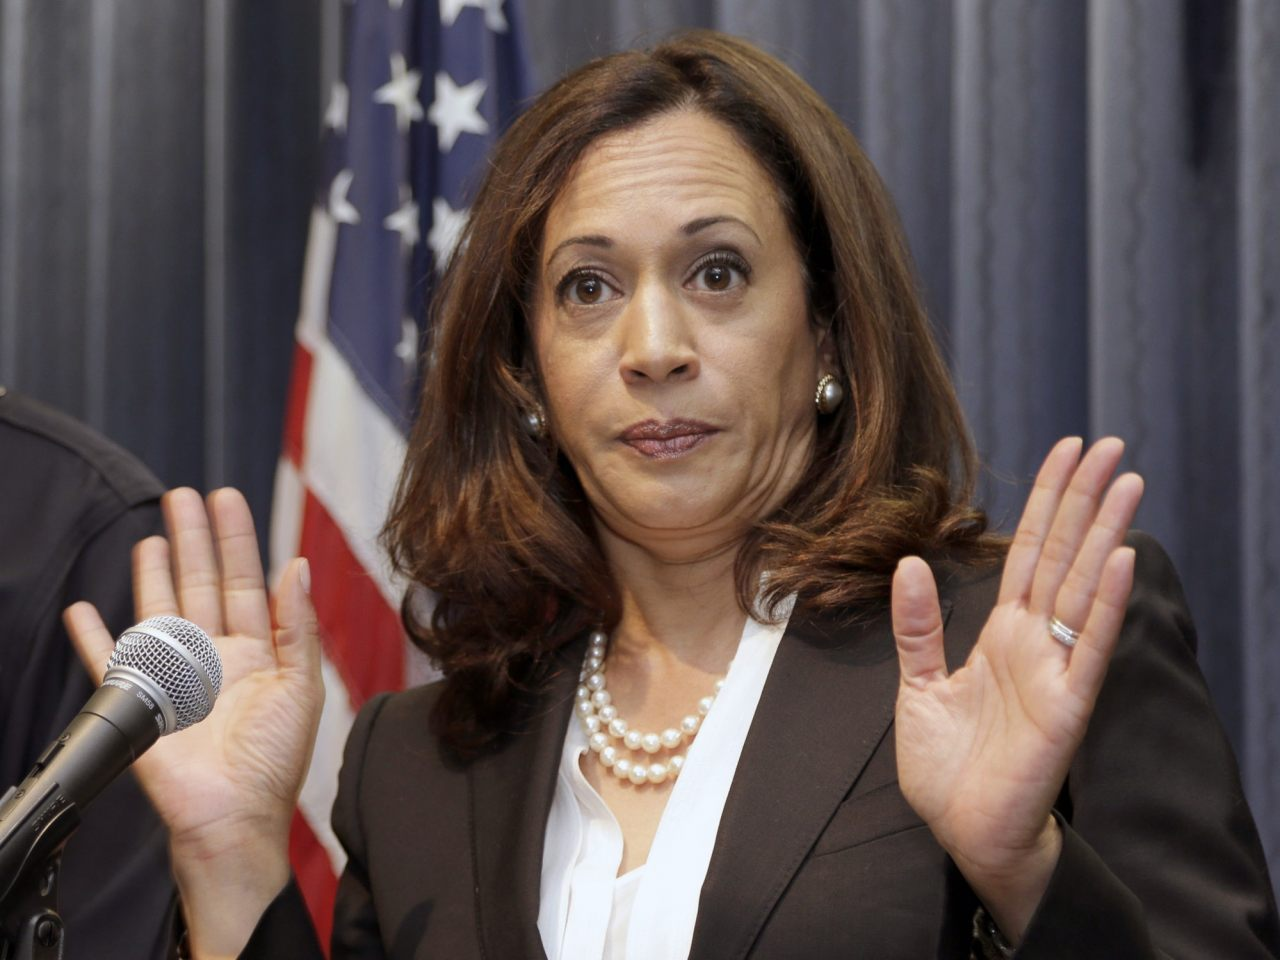 Image: Kamala Harris reveals herself as an anti-Christian BIGOT who hates God and anyone who recognizes the existence of God